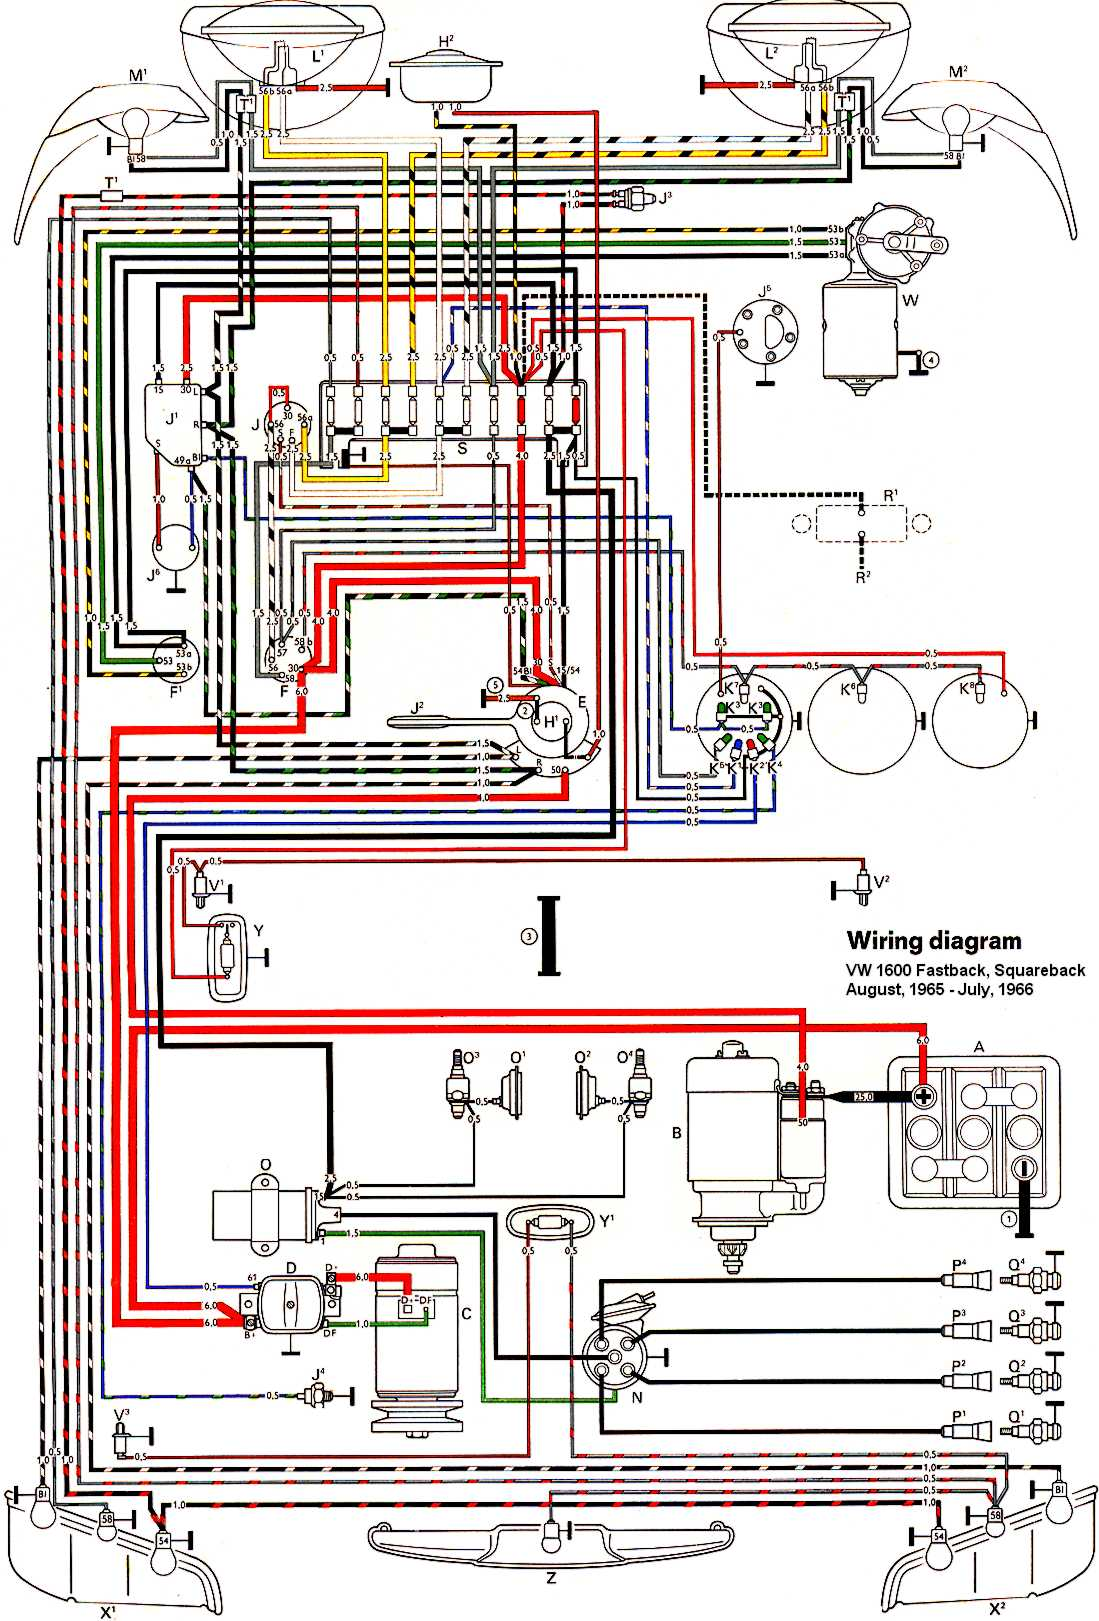 type3_1600_66 vw bus wiring diagram 1965 vw bus wiring diagram \u2022 wiring diagrams 1970 vw bug wiring diagram at gsmportal.co